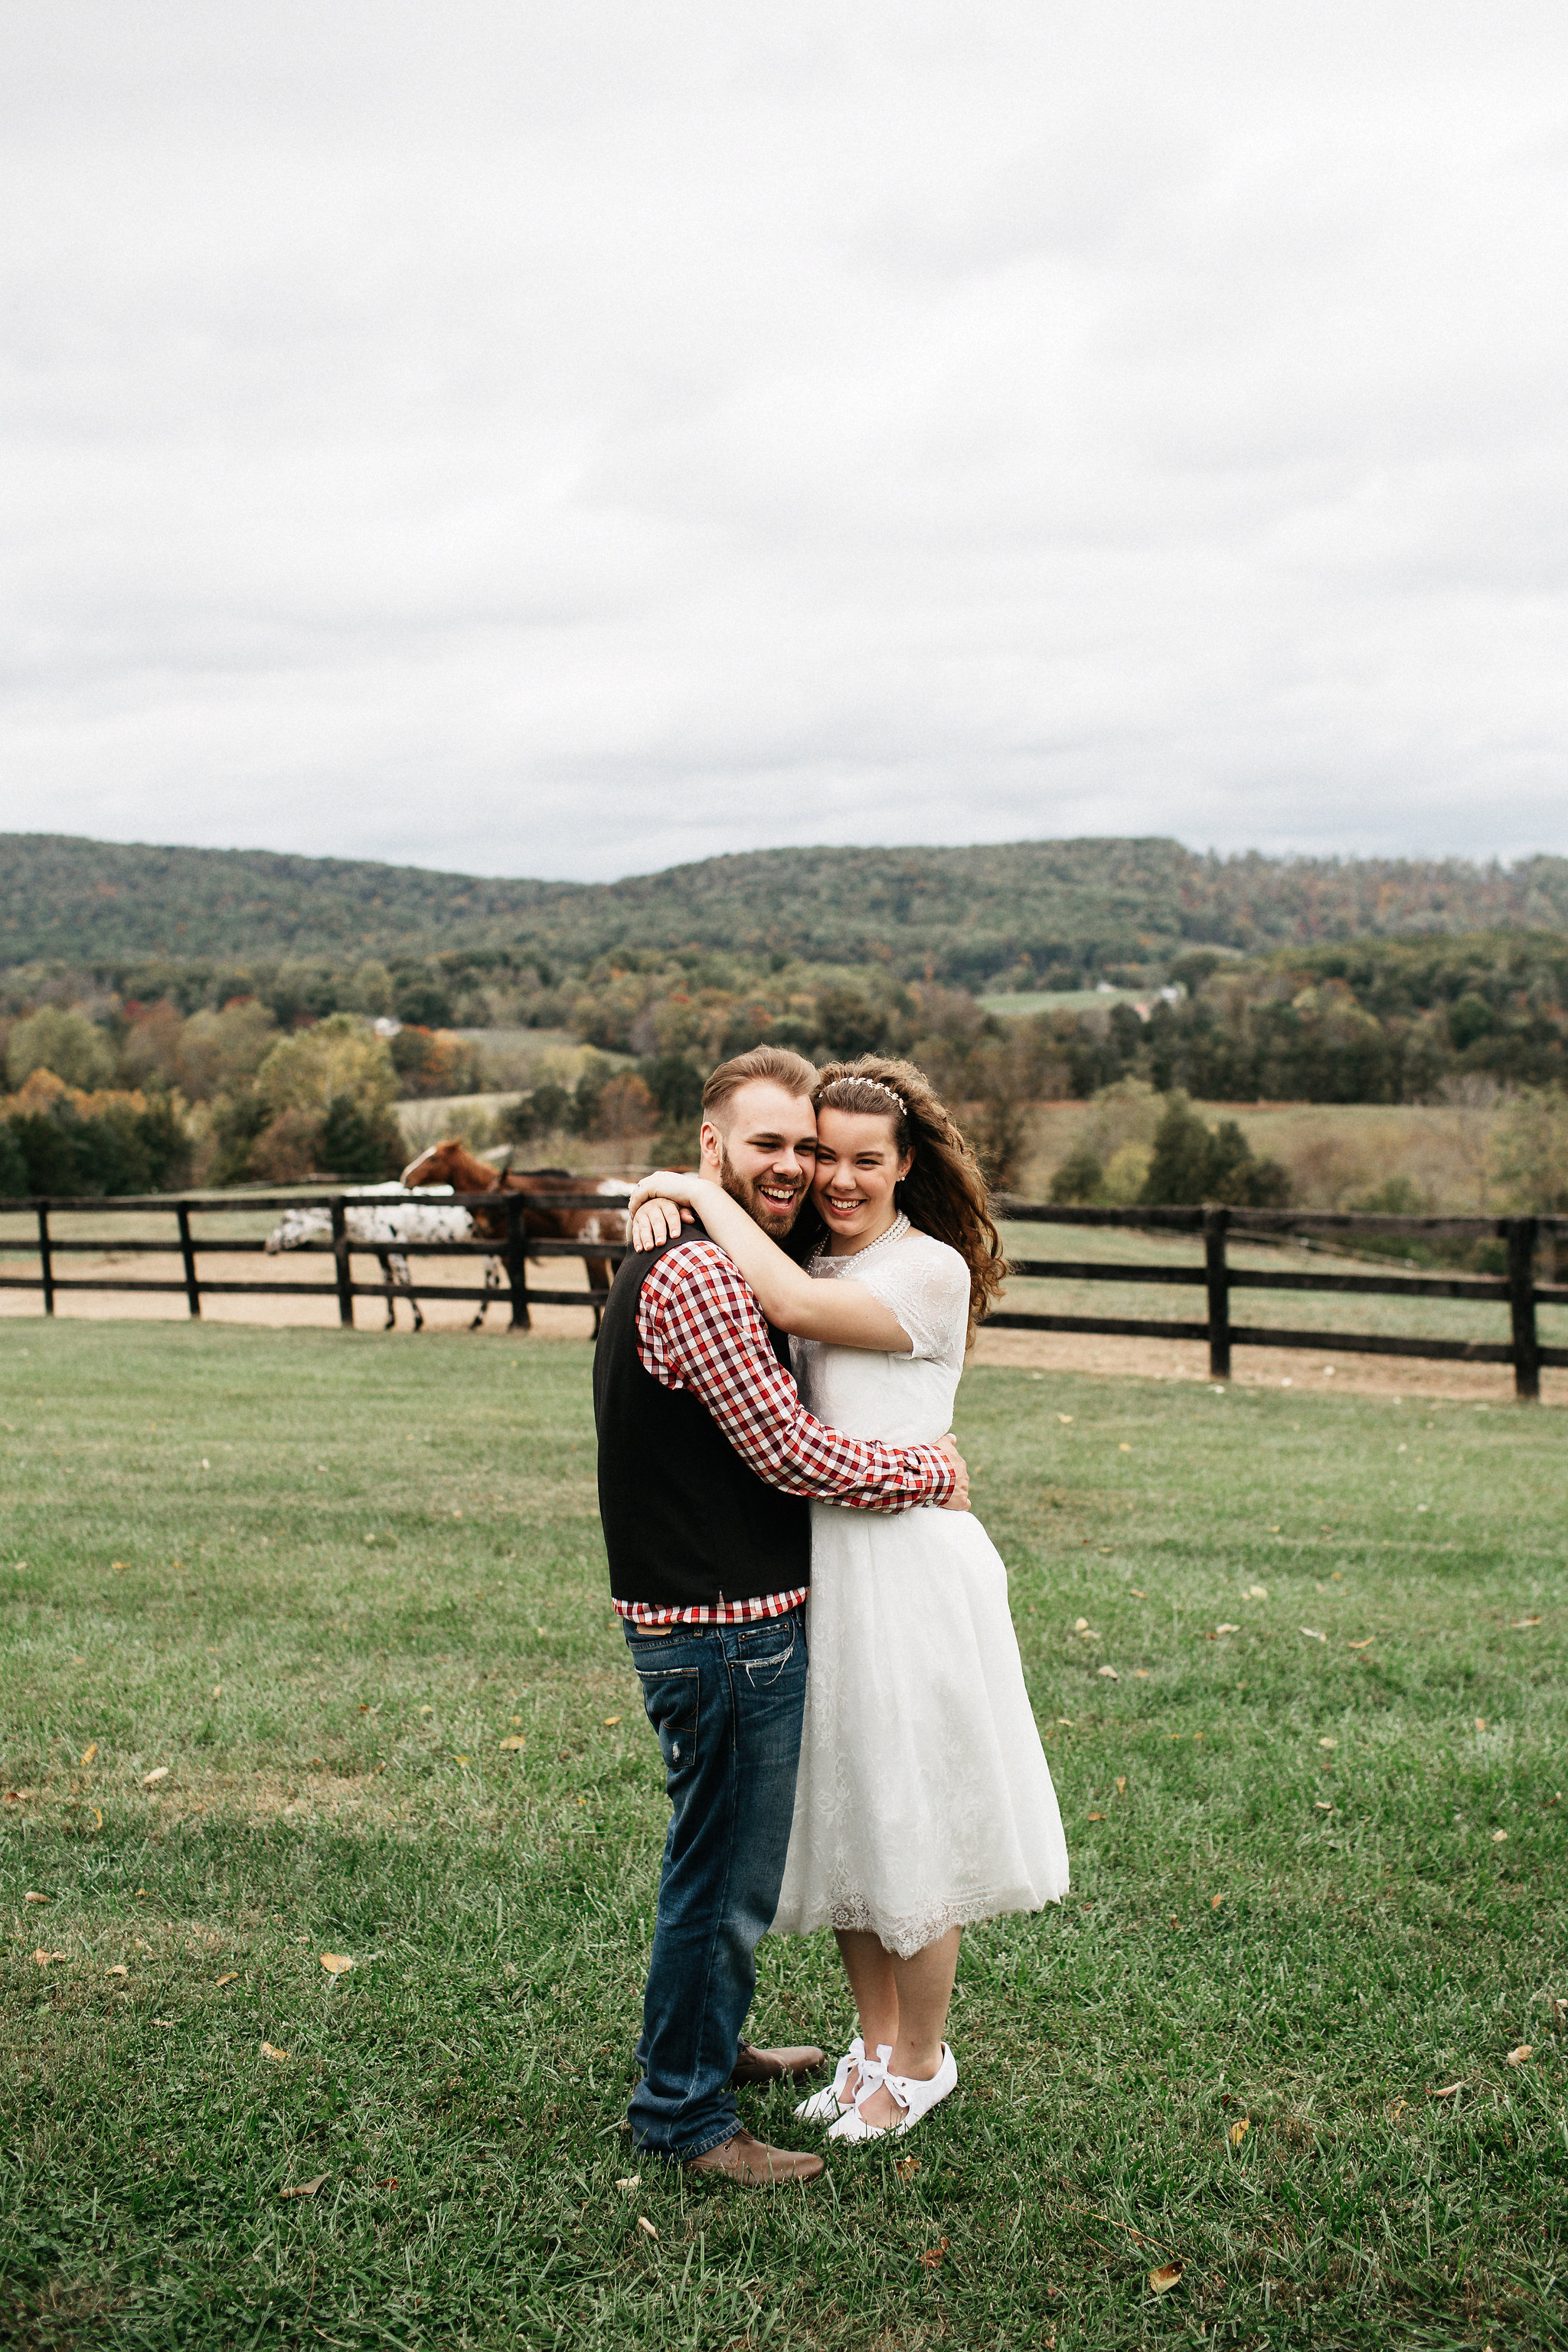 Caitlin&CodyMarried2017-11-03at19.19.40PM13.jpg